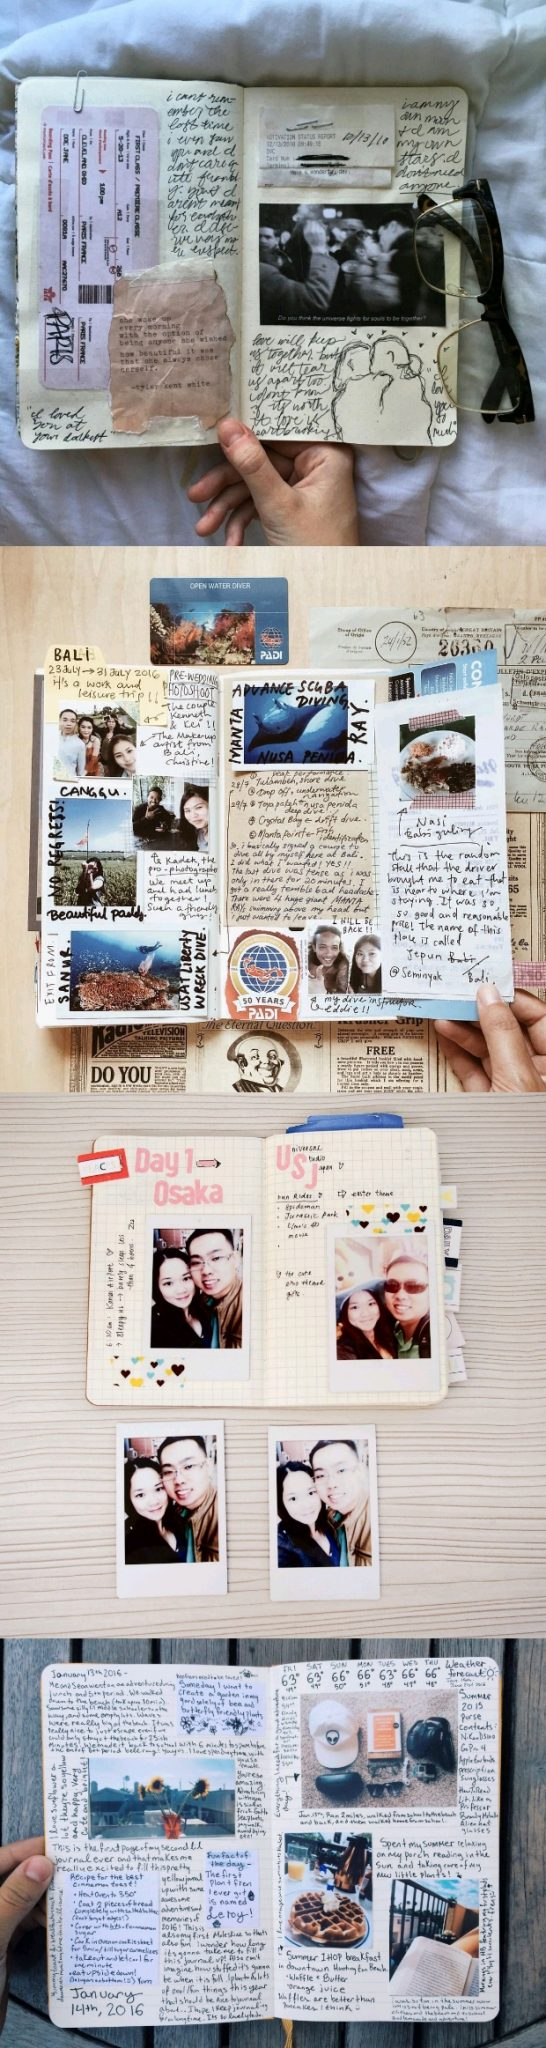 polaroid journal